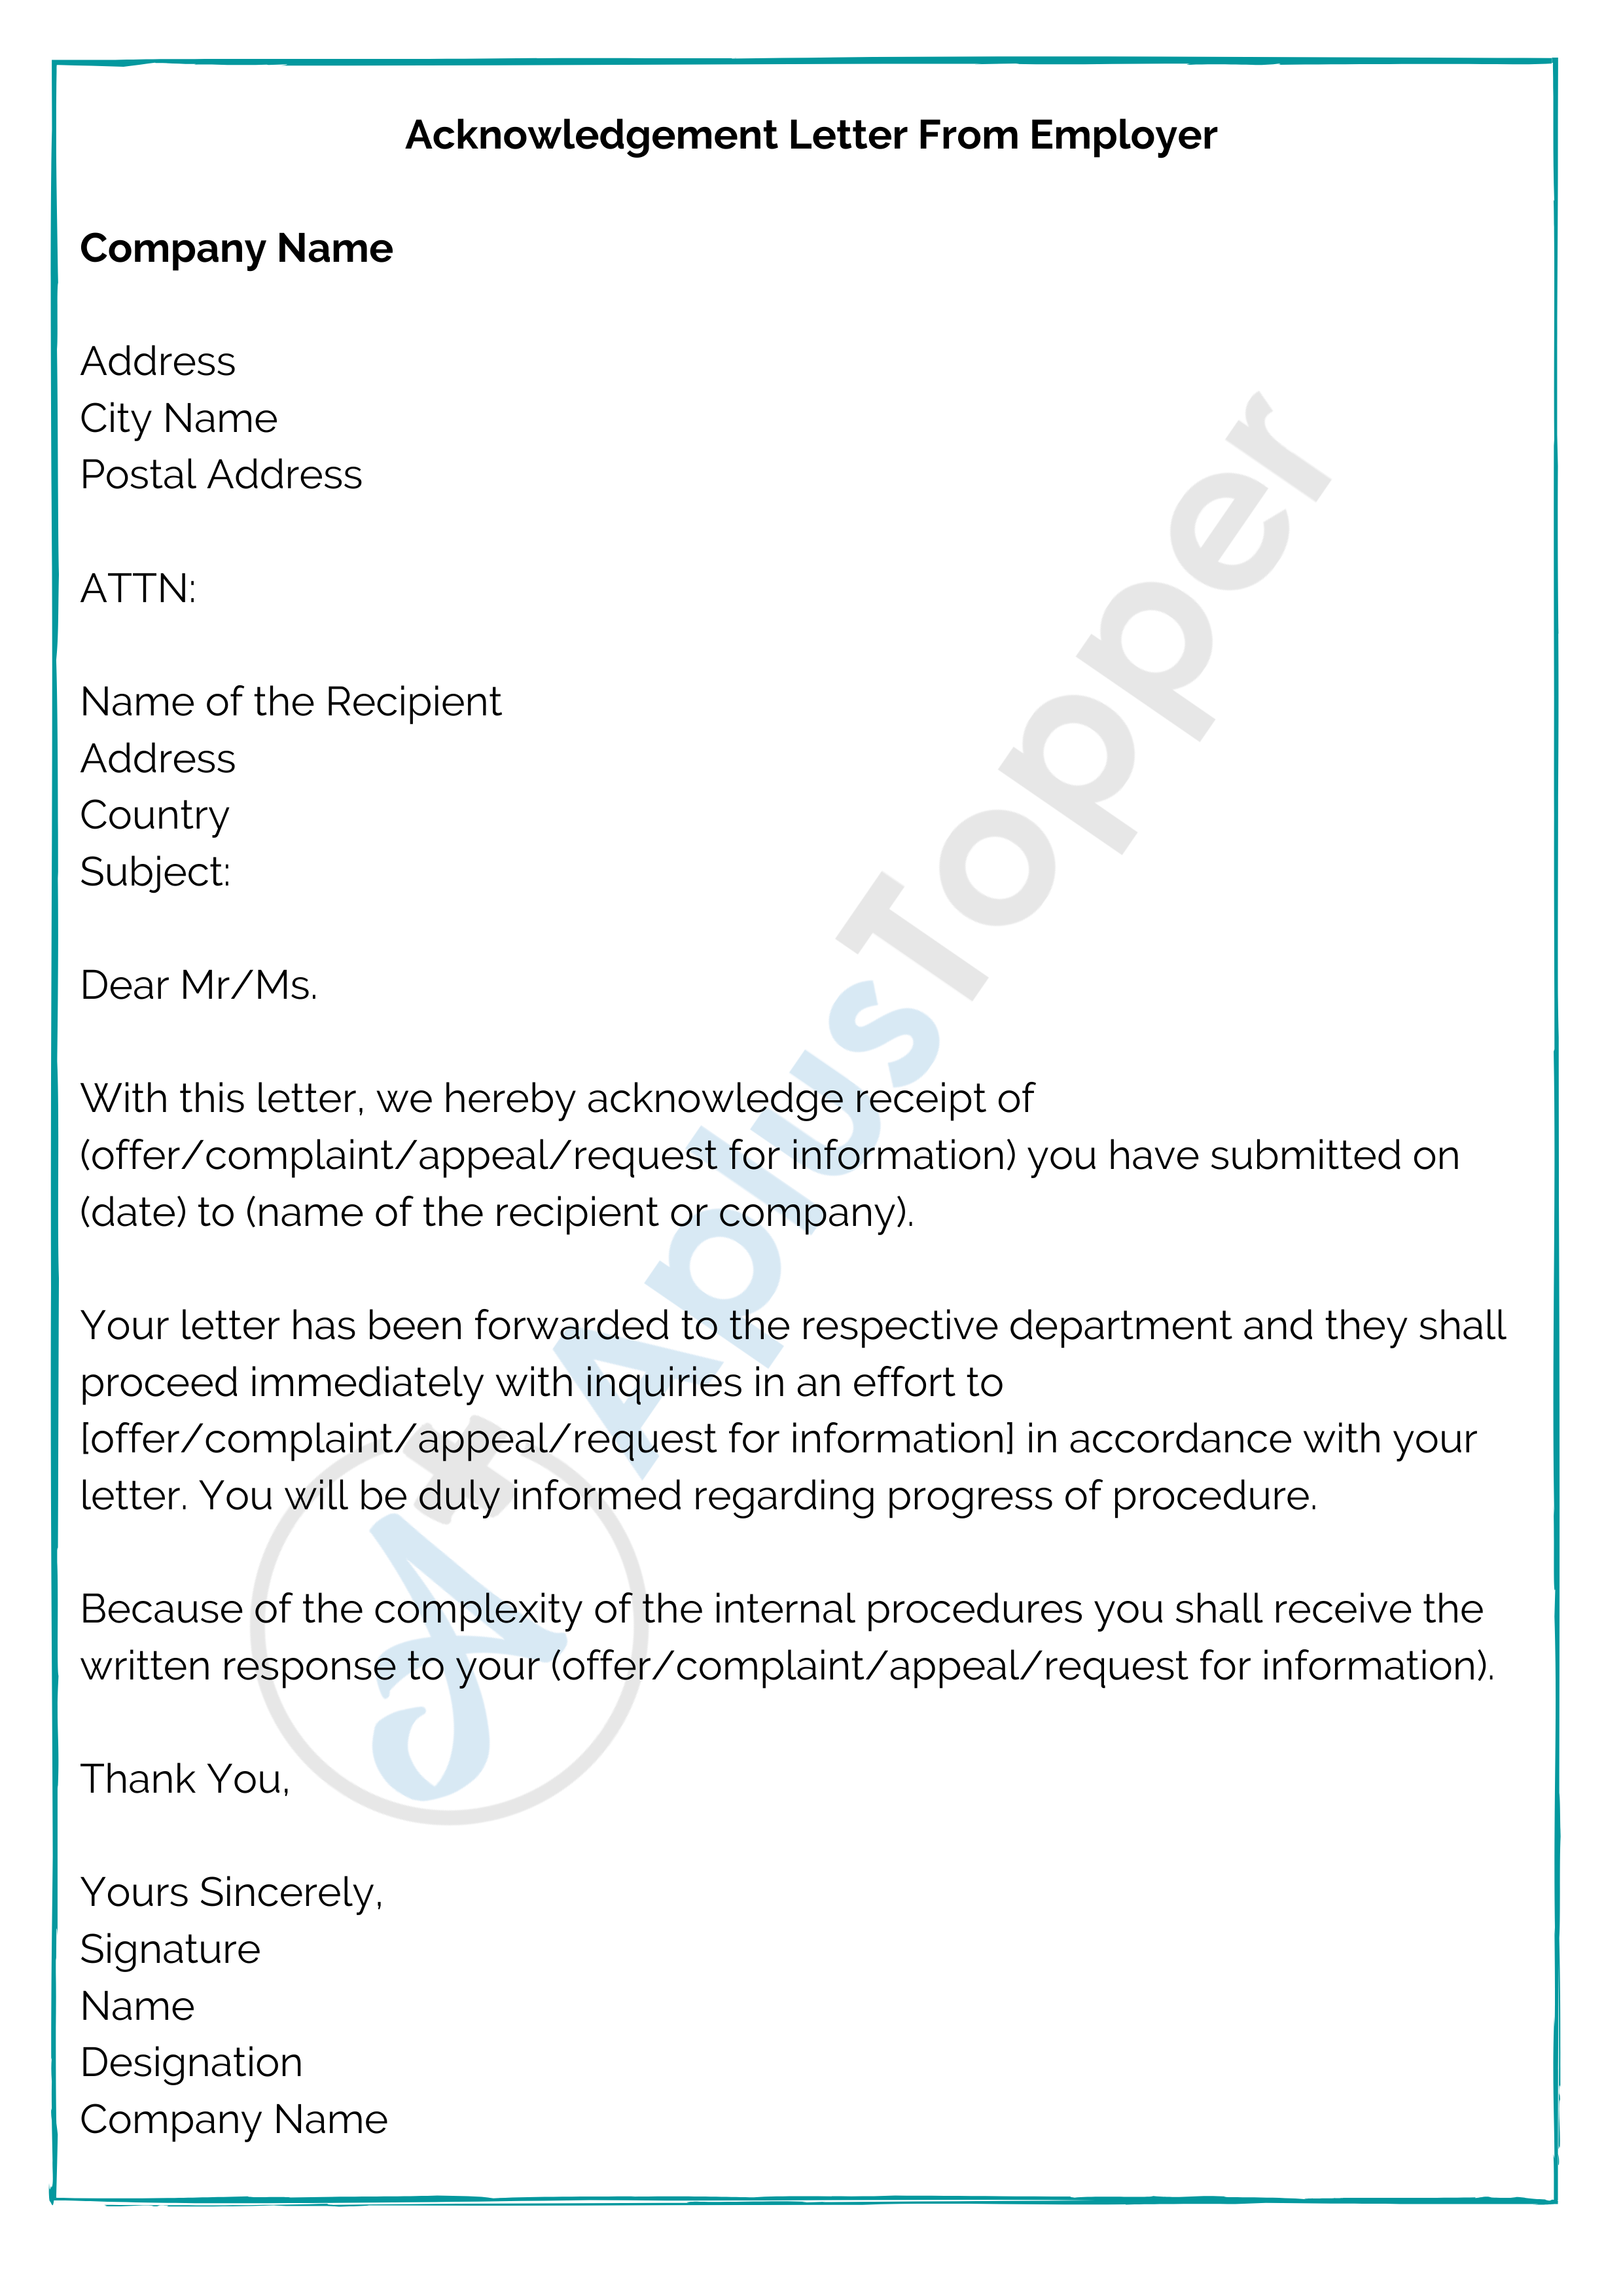 Acknowledgement Letter from Employer